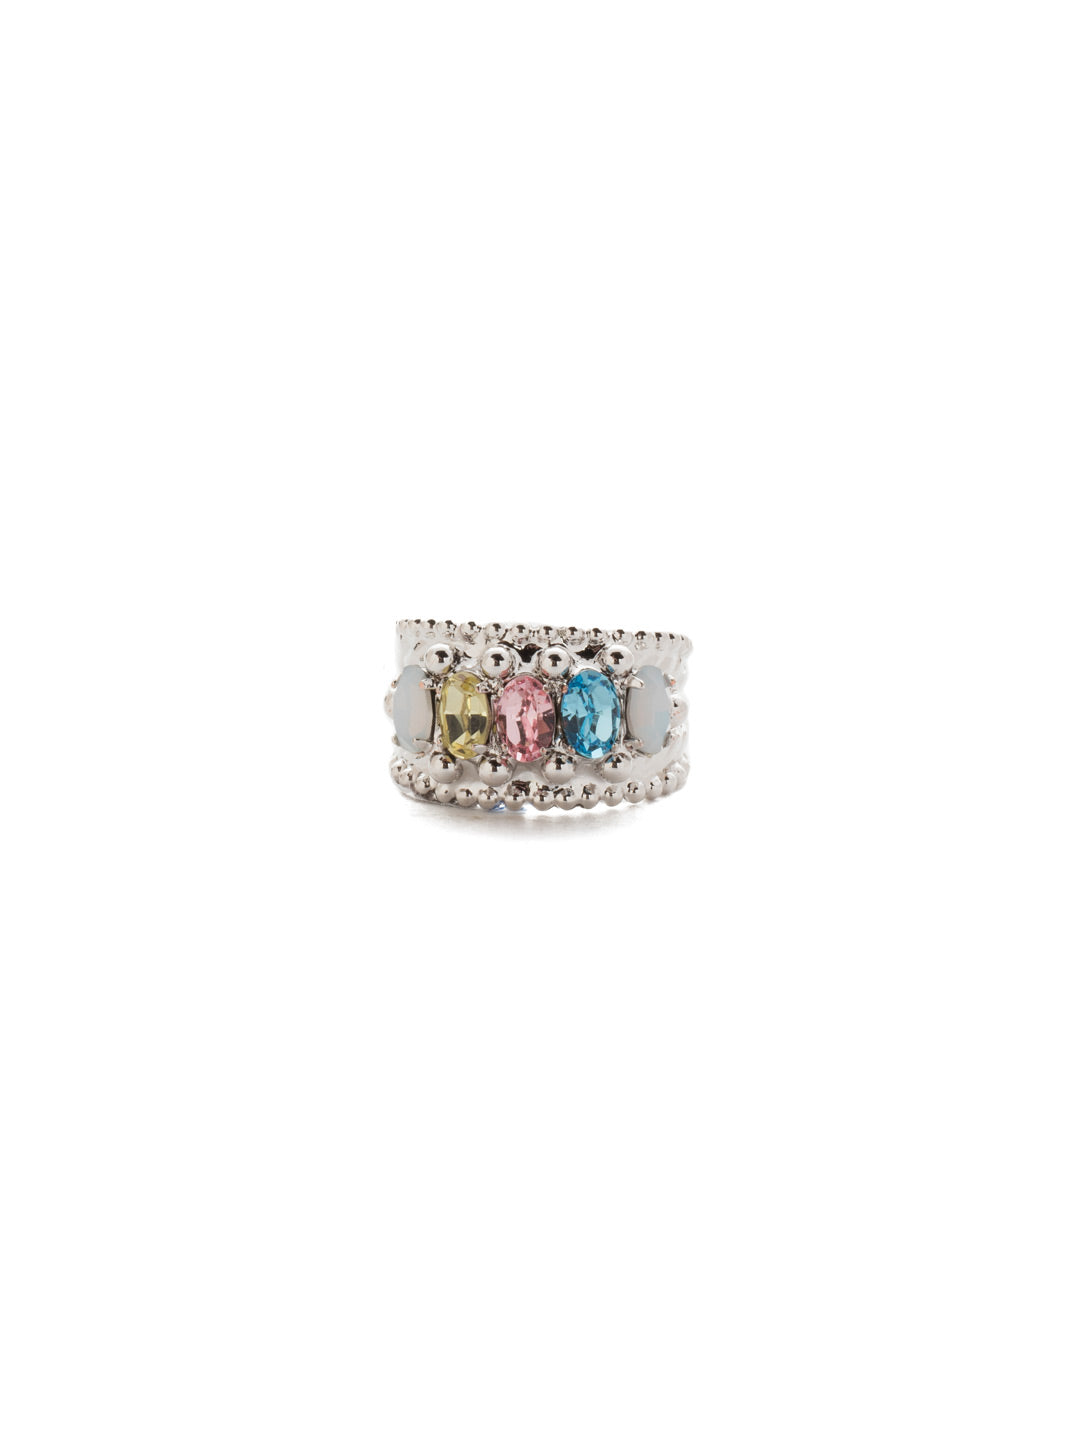 Crown Jewel Cocktail Ring - RDH2RHSSU